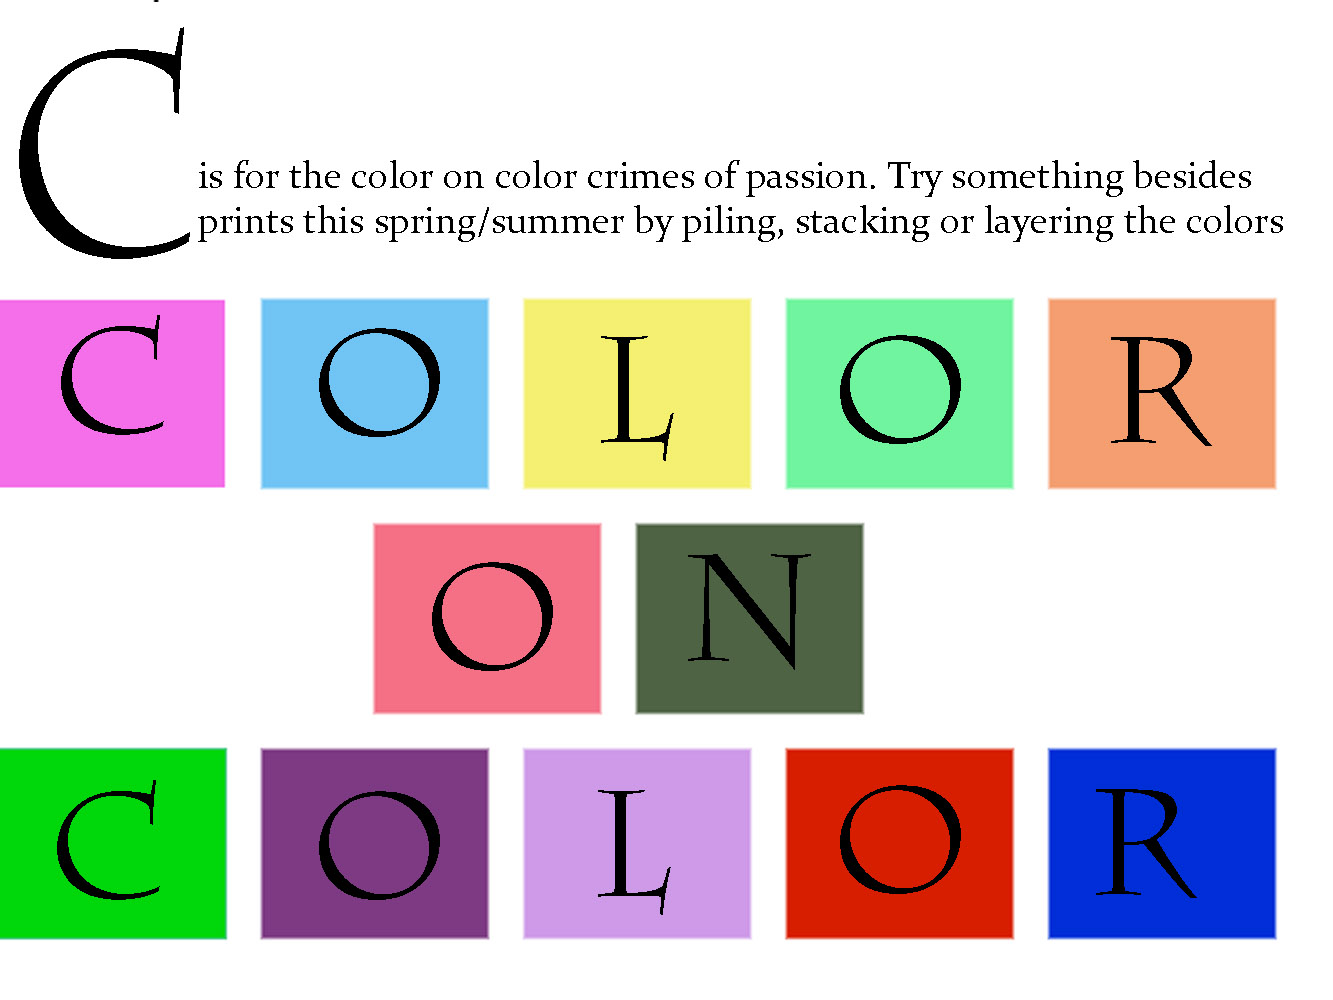 c is for color